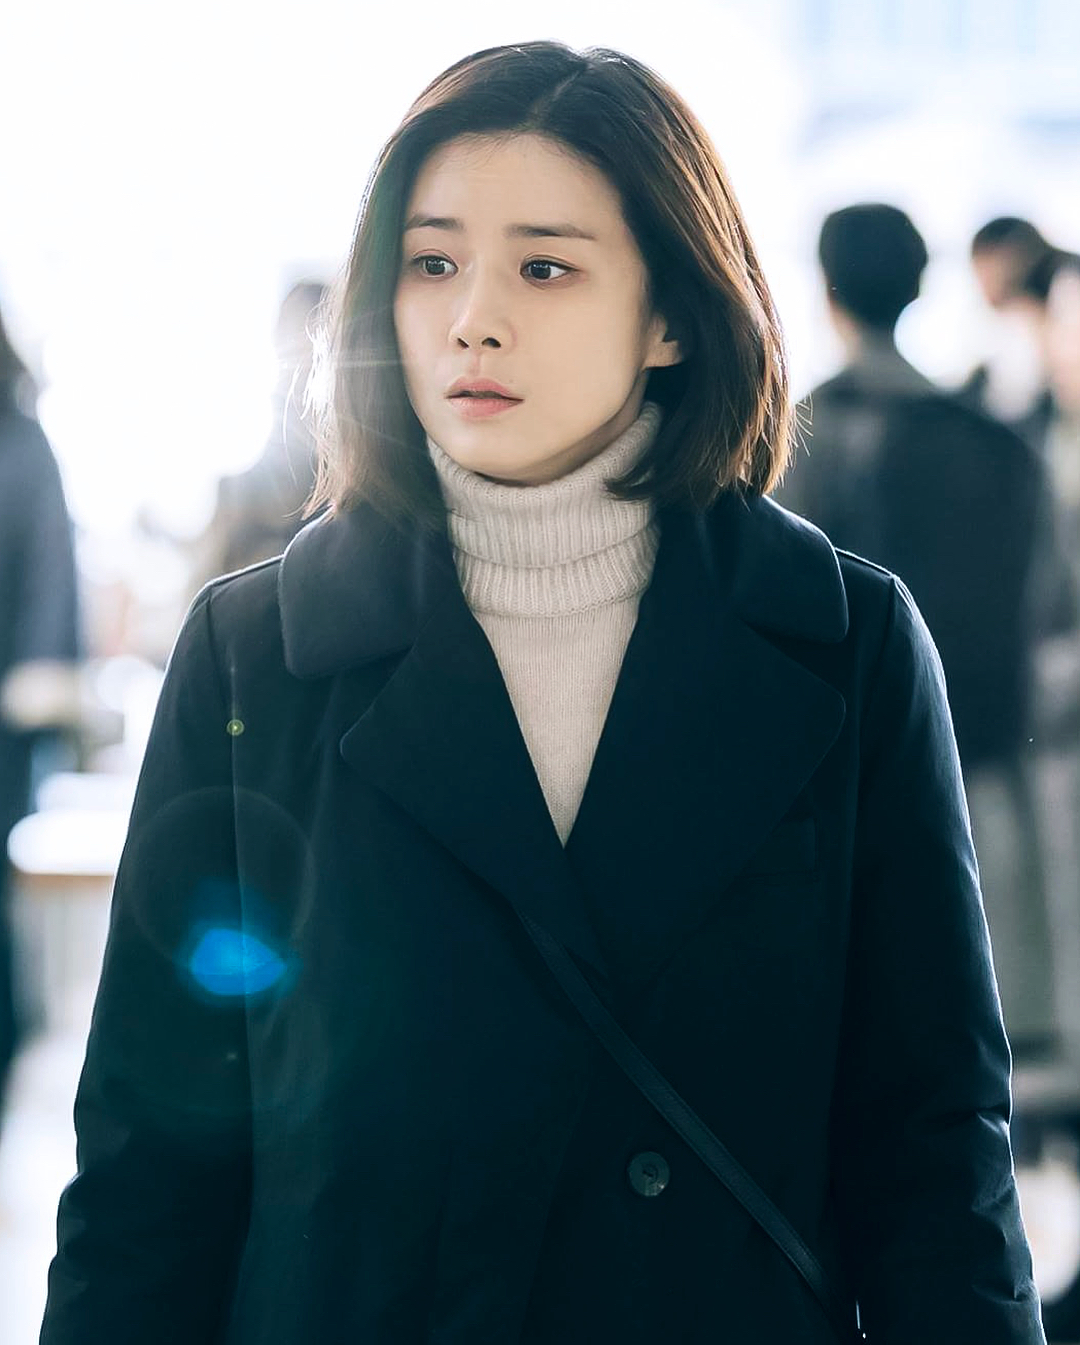 Lee Bo young actress images